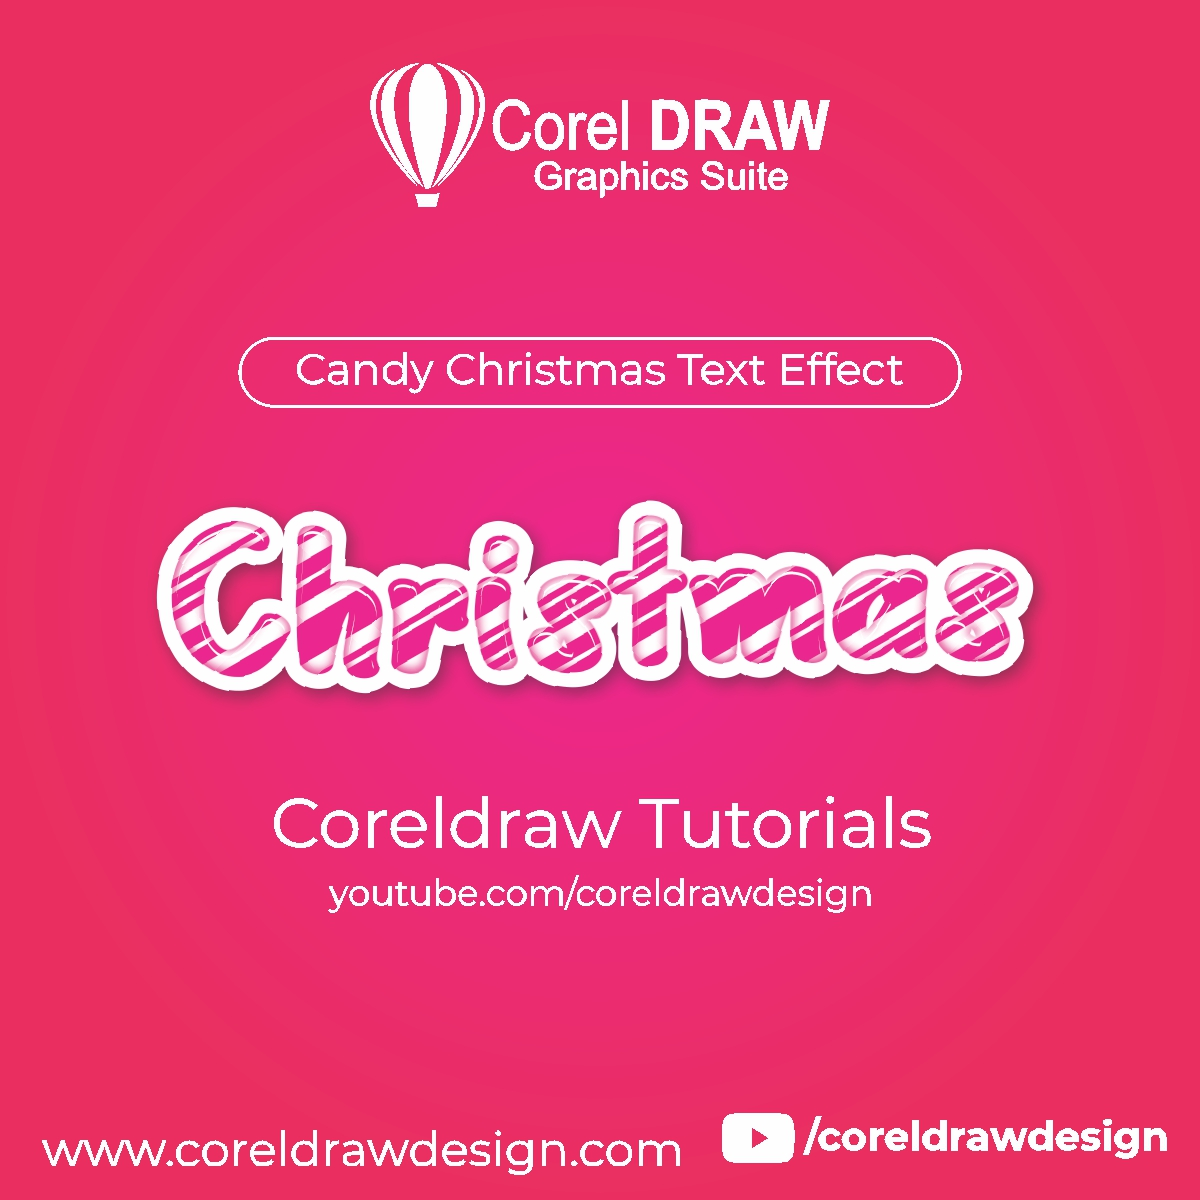 Creating - Candy Christmas Text Effect - Digital Graphics - Tutorial Coreldraw for Beginners